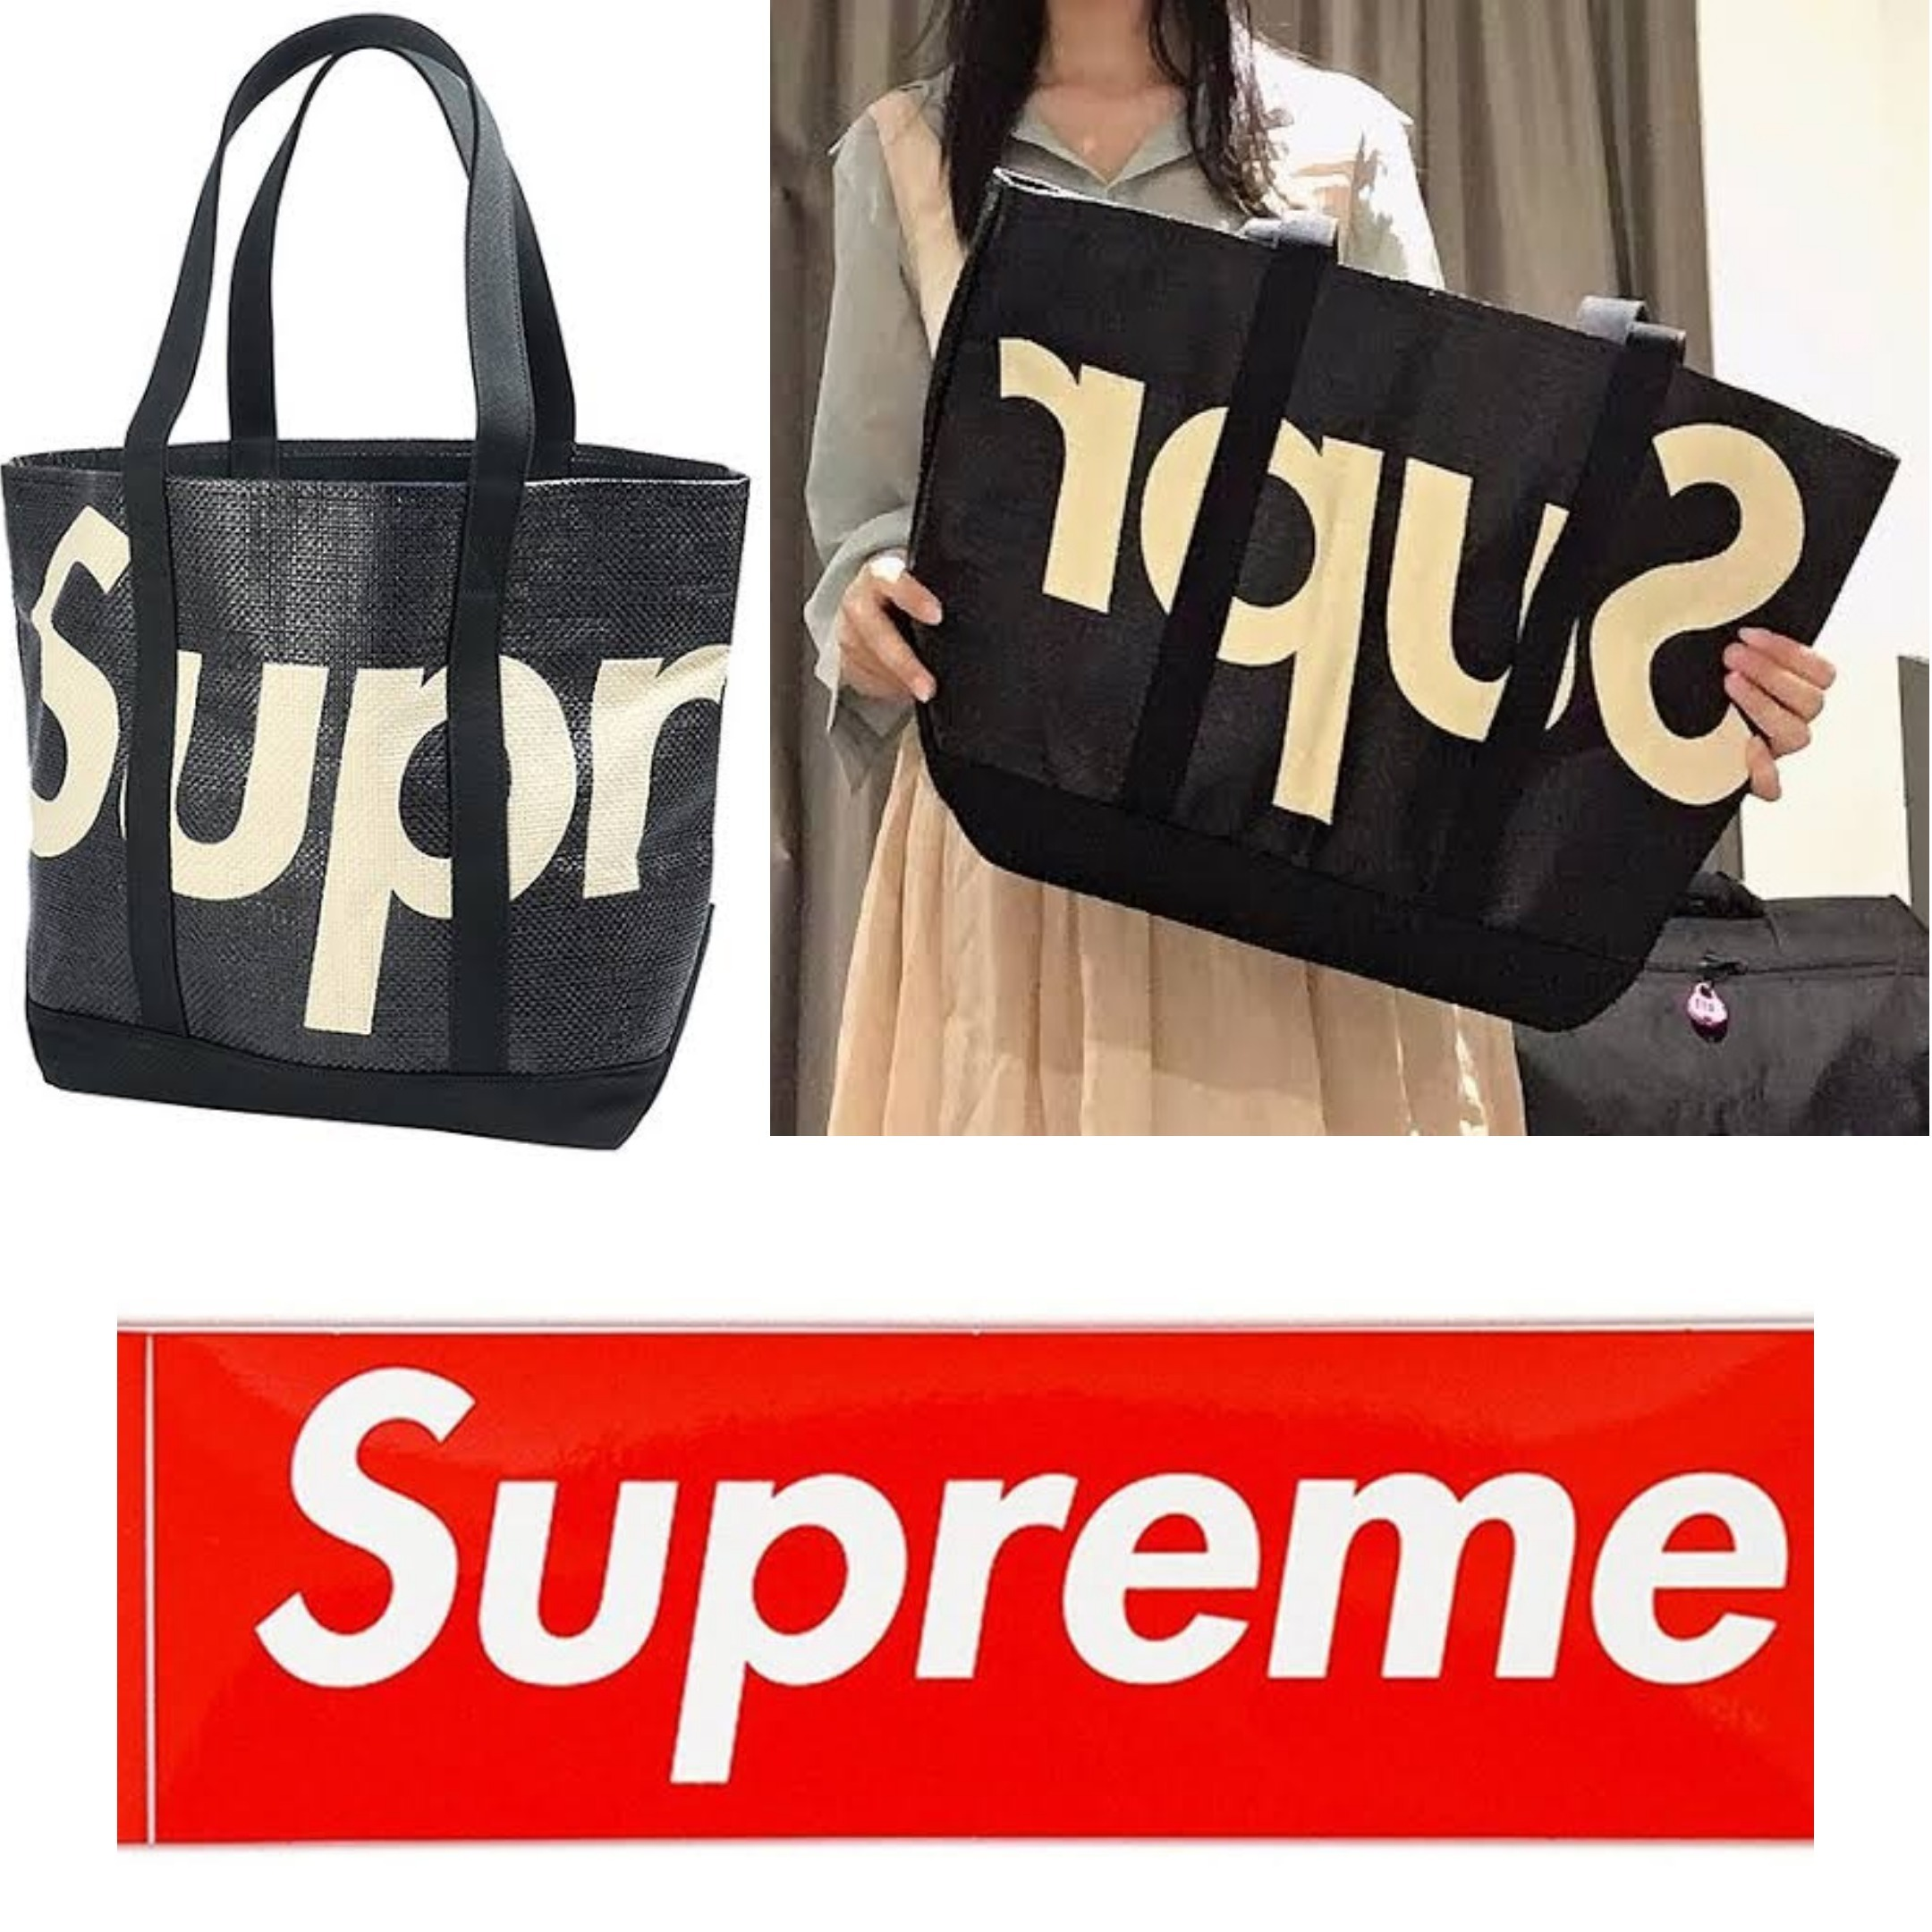 shop supremebeing bags